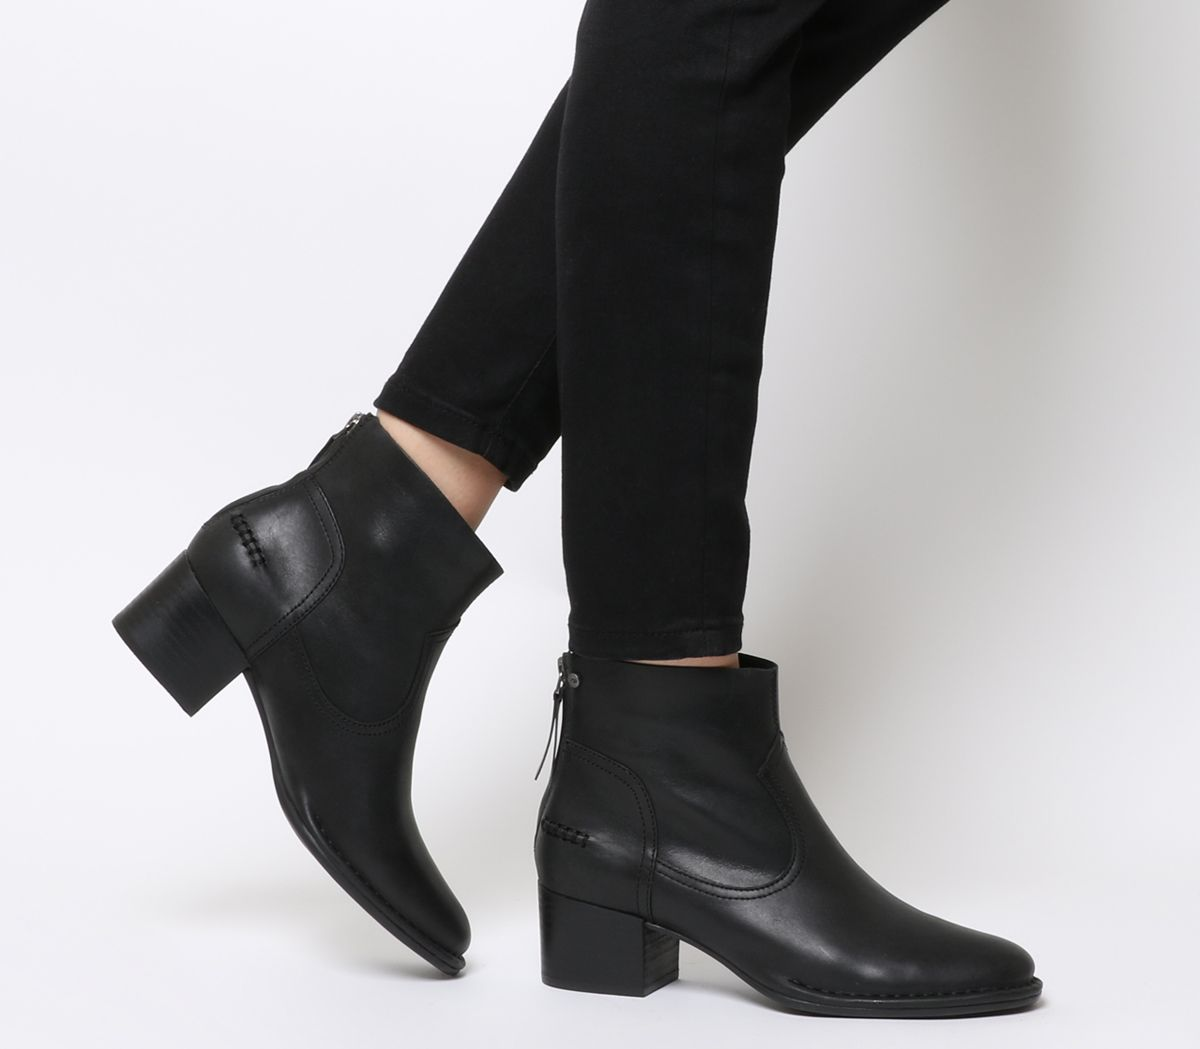 d690d37b3f0 Bandara Ankle Boots